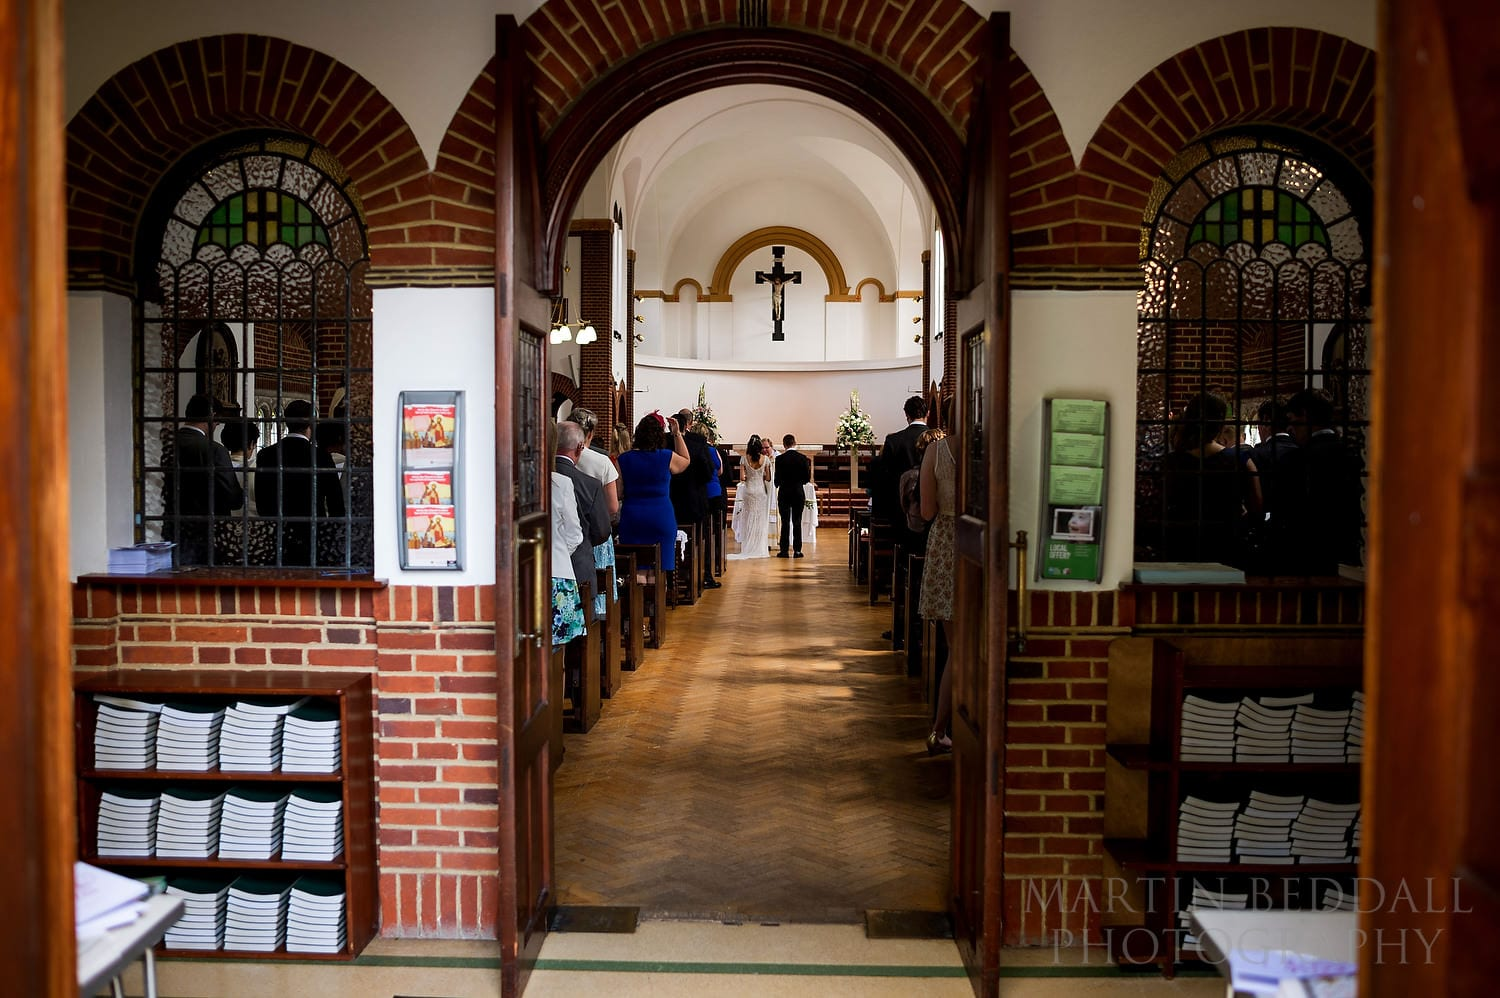 Wedding at St Paul's church in Haywards Heath